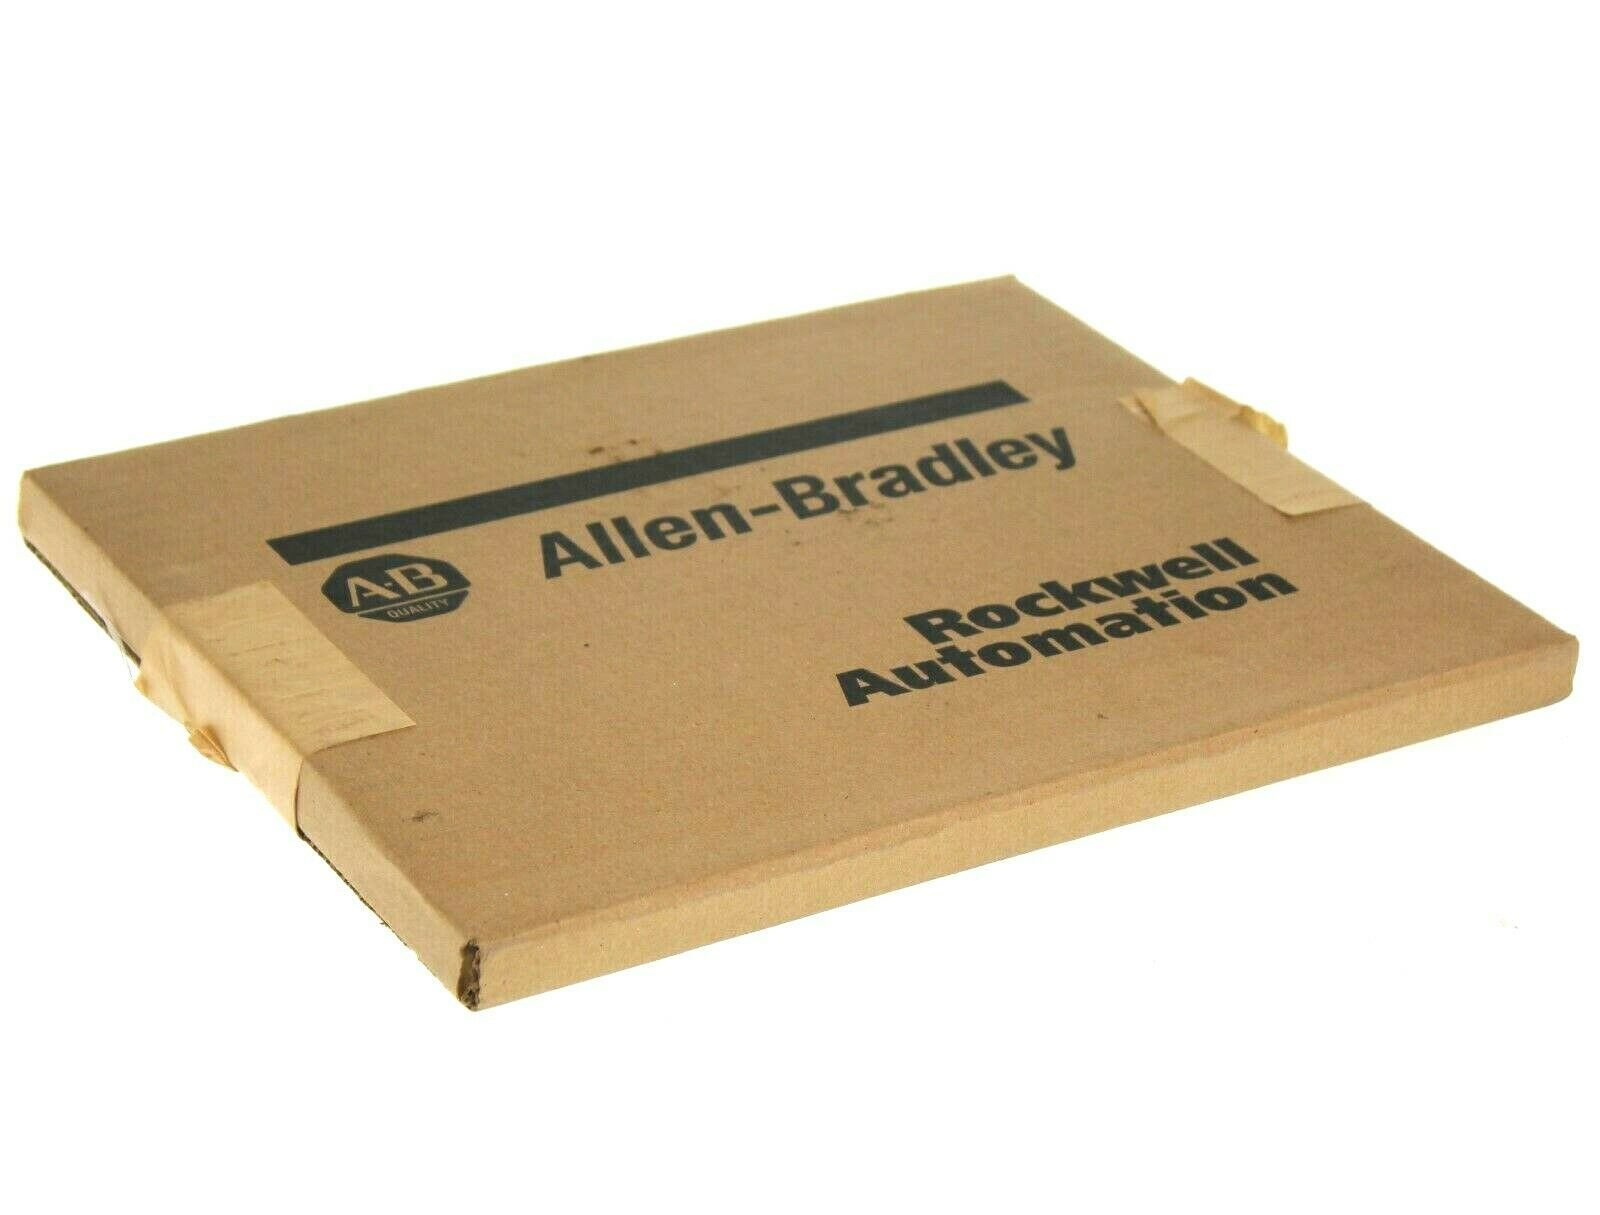 New Allen Bradley 2711P-RR64 /A PanelView Plus RAM SO DIMM 64MB